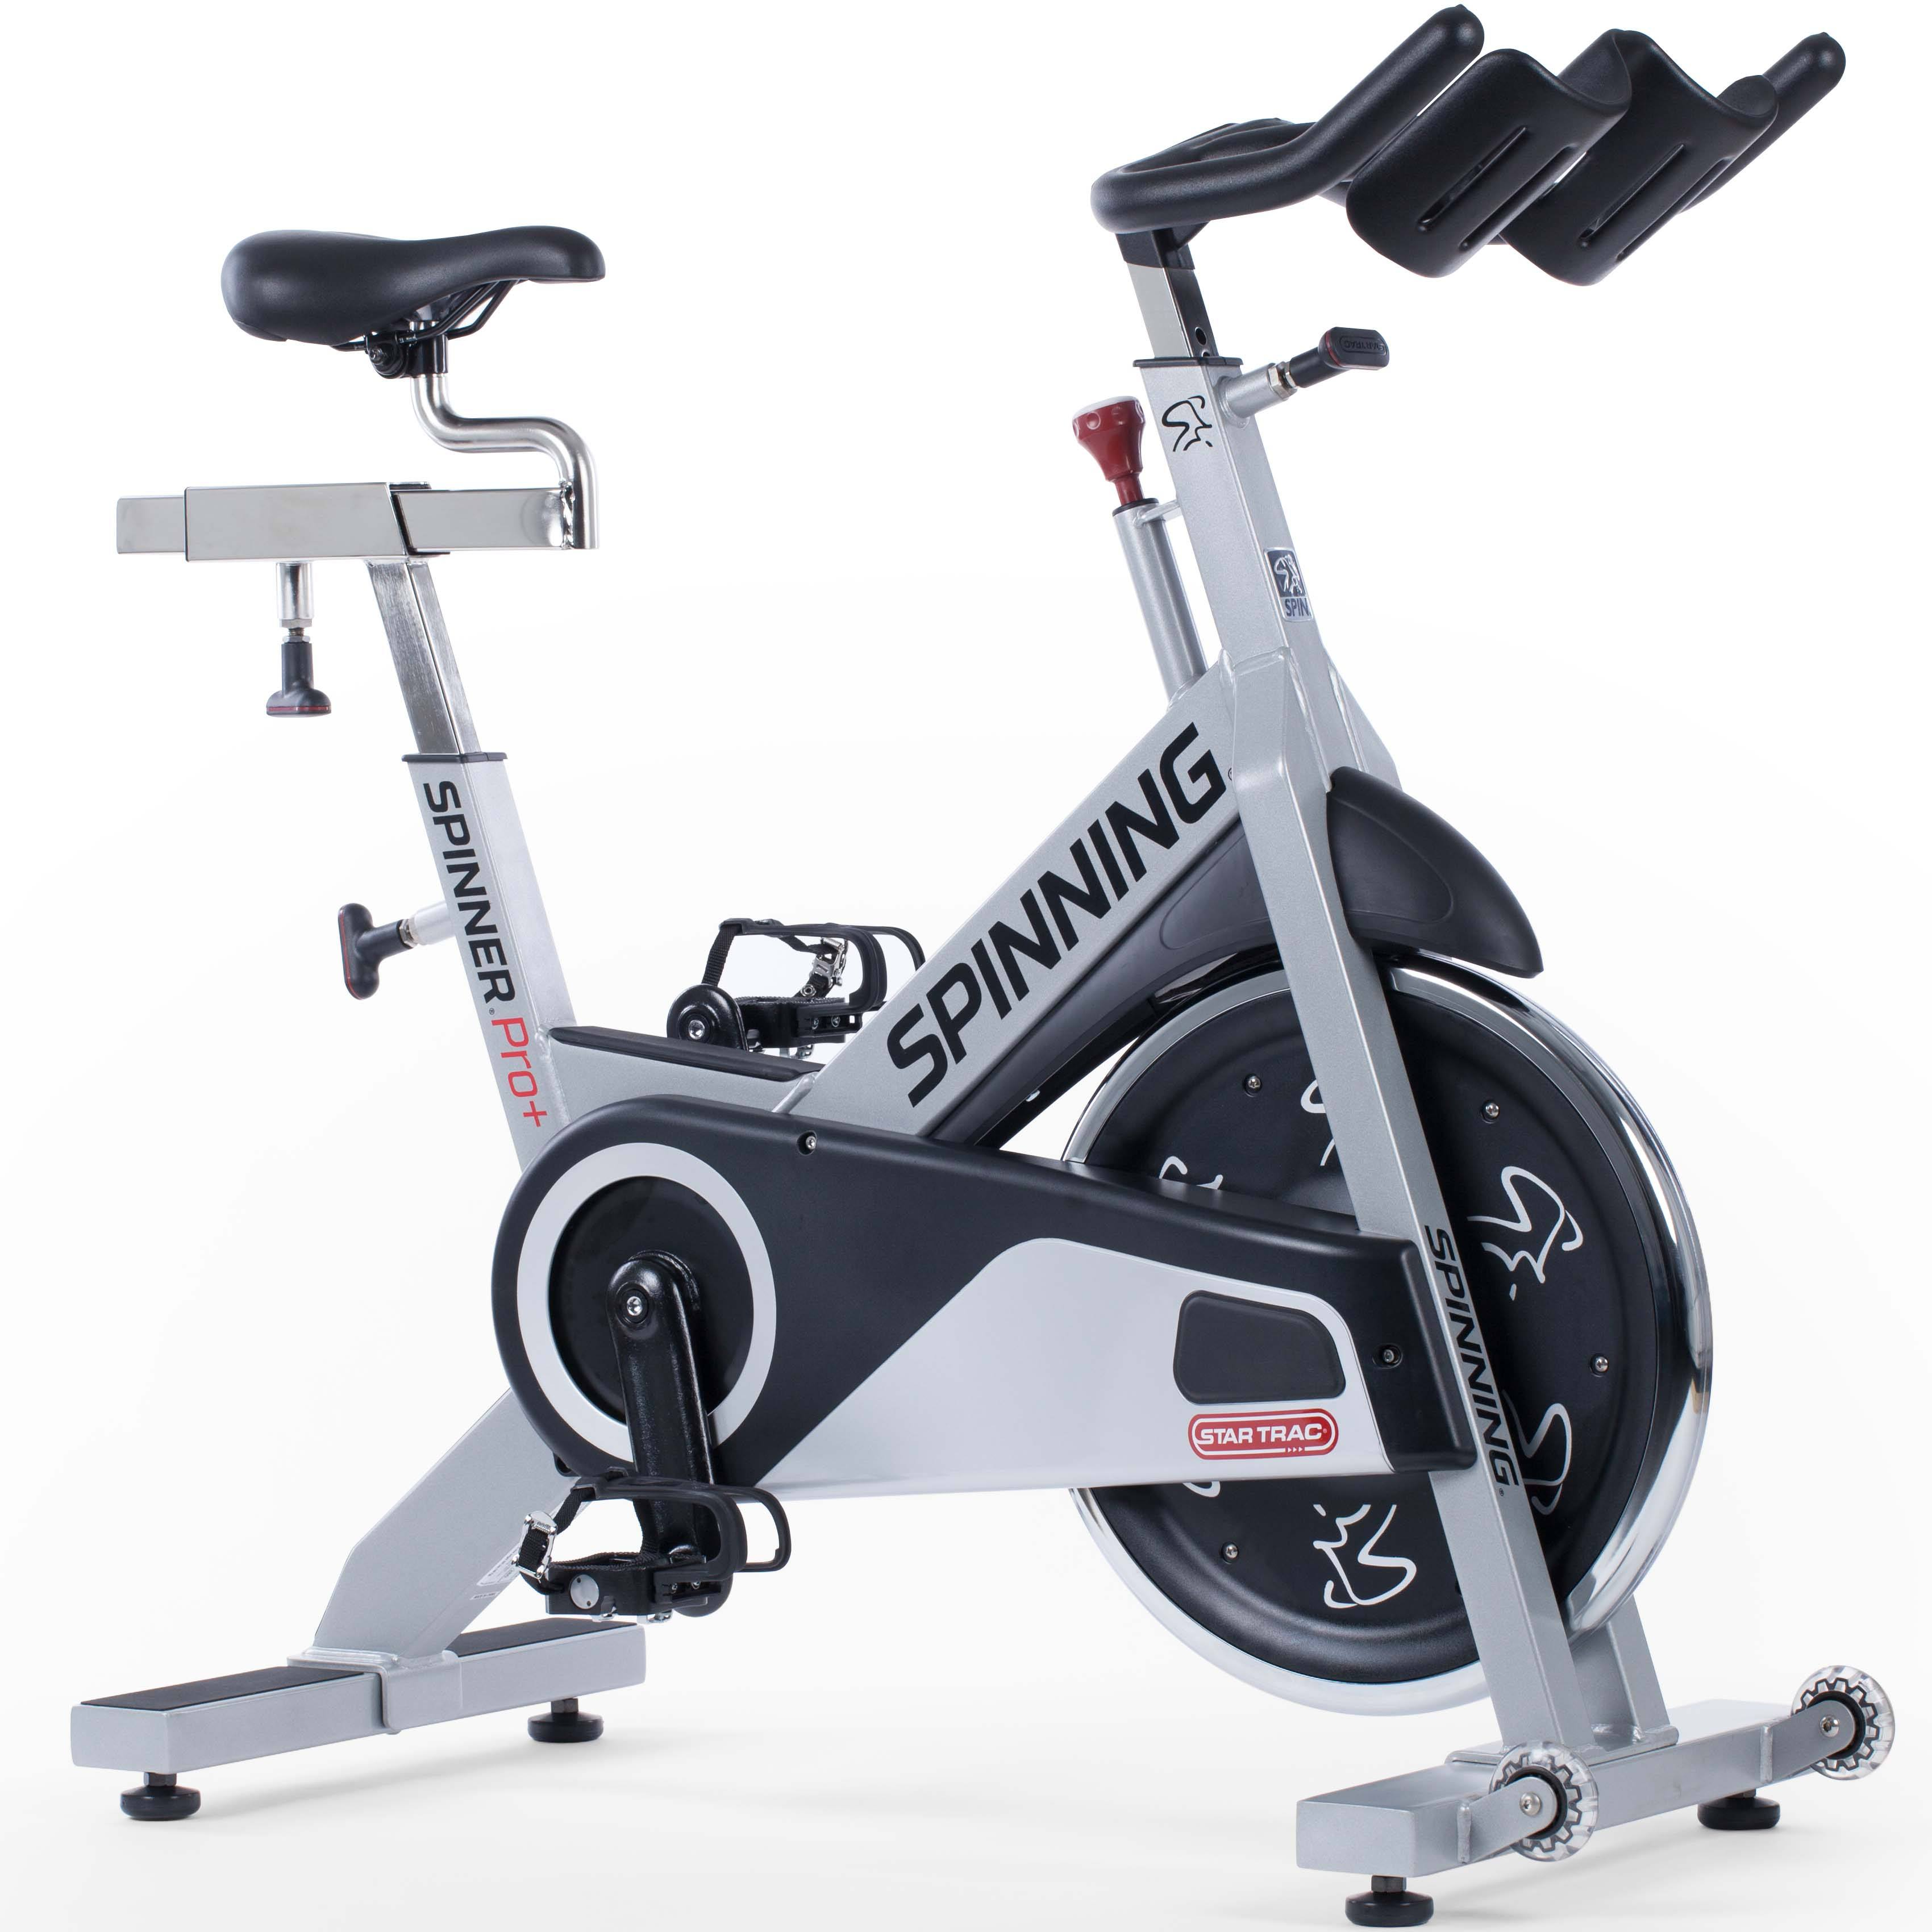 Star Trac Spinner 174 Pro Plus Bike Indoor Cycling Magazin